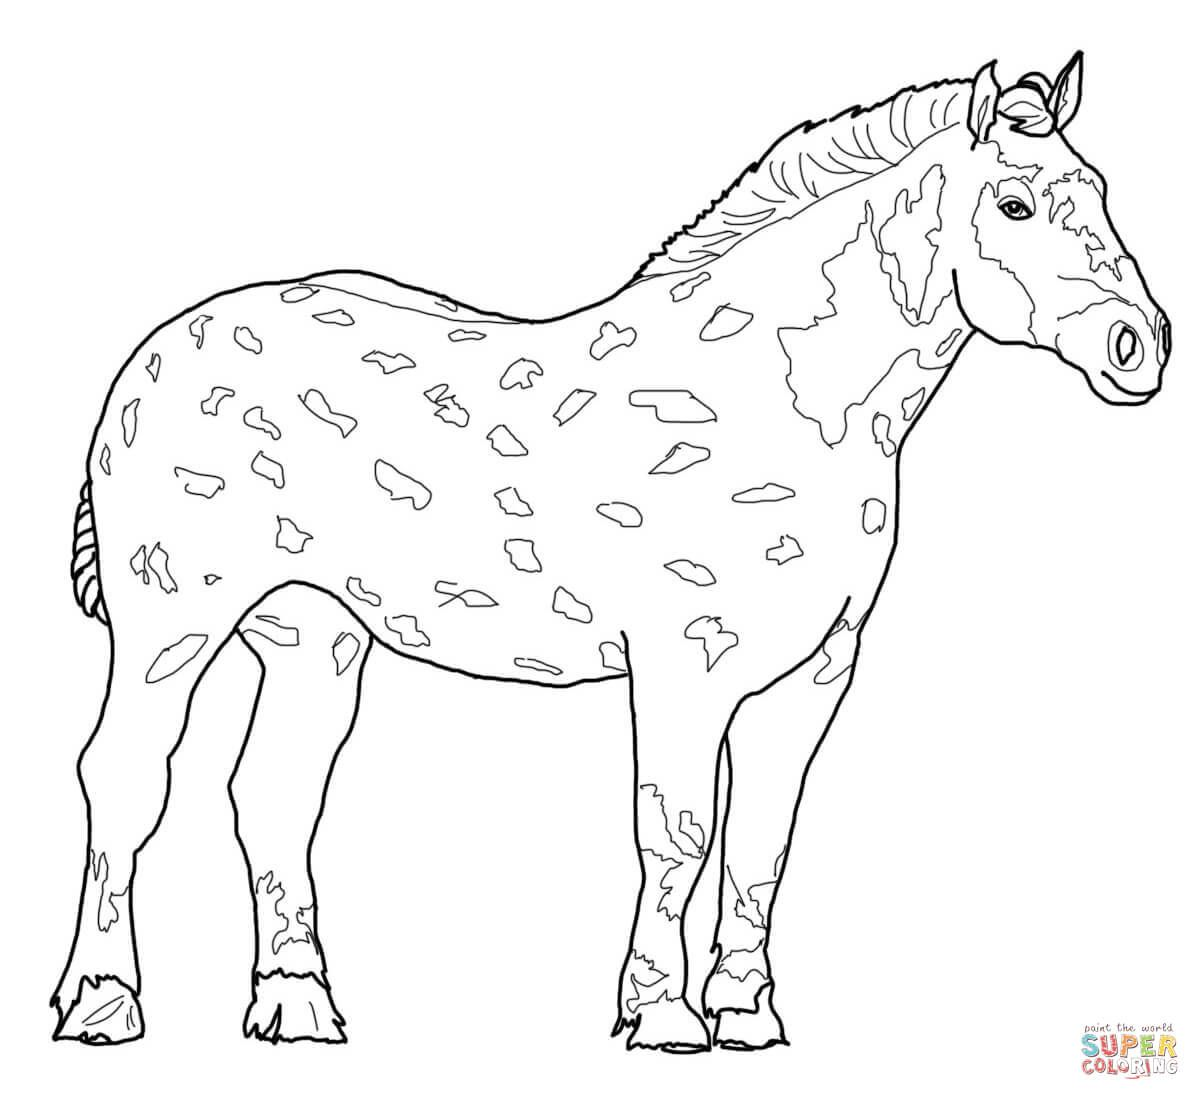 miniature horse coloring pages miniature horse coloring pages miniature horse coloring pages 1 1